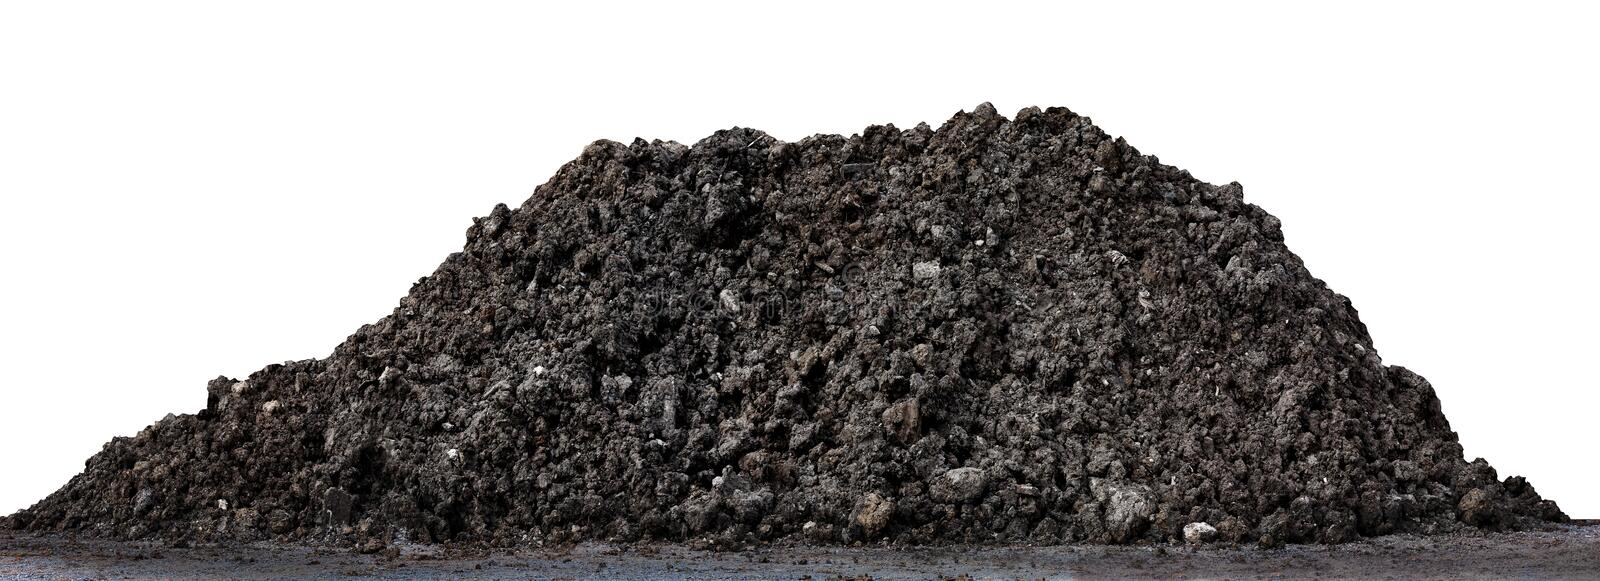 Soil clay mountain pile, soil heap land for construction home or road way building, wet soil dirt mound brown black large pile royalty free stock image